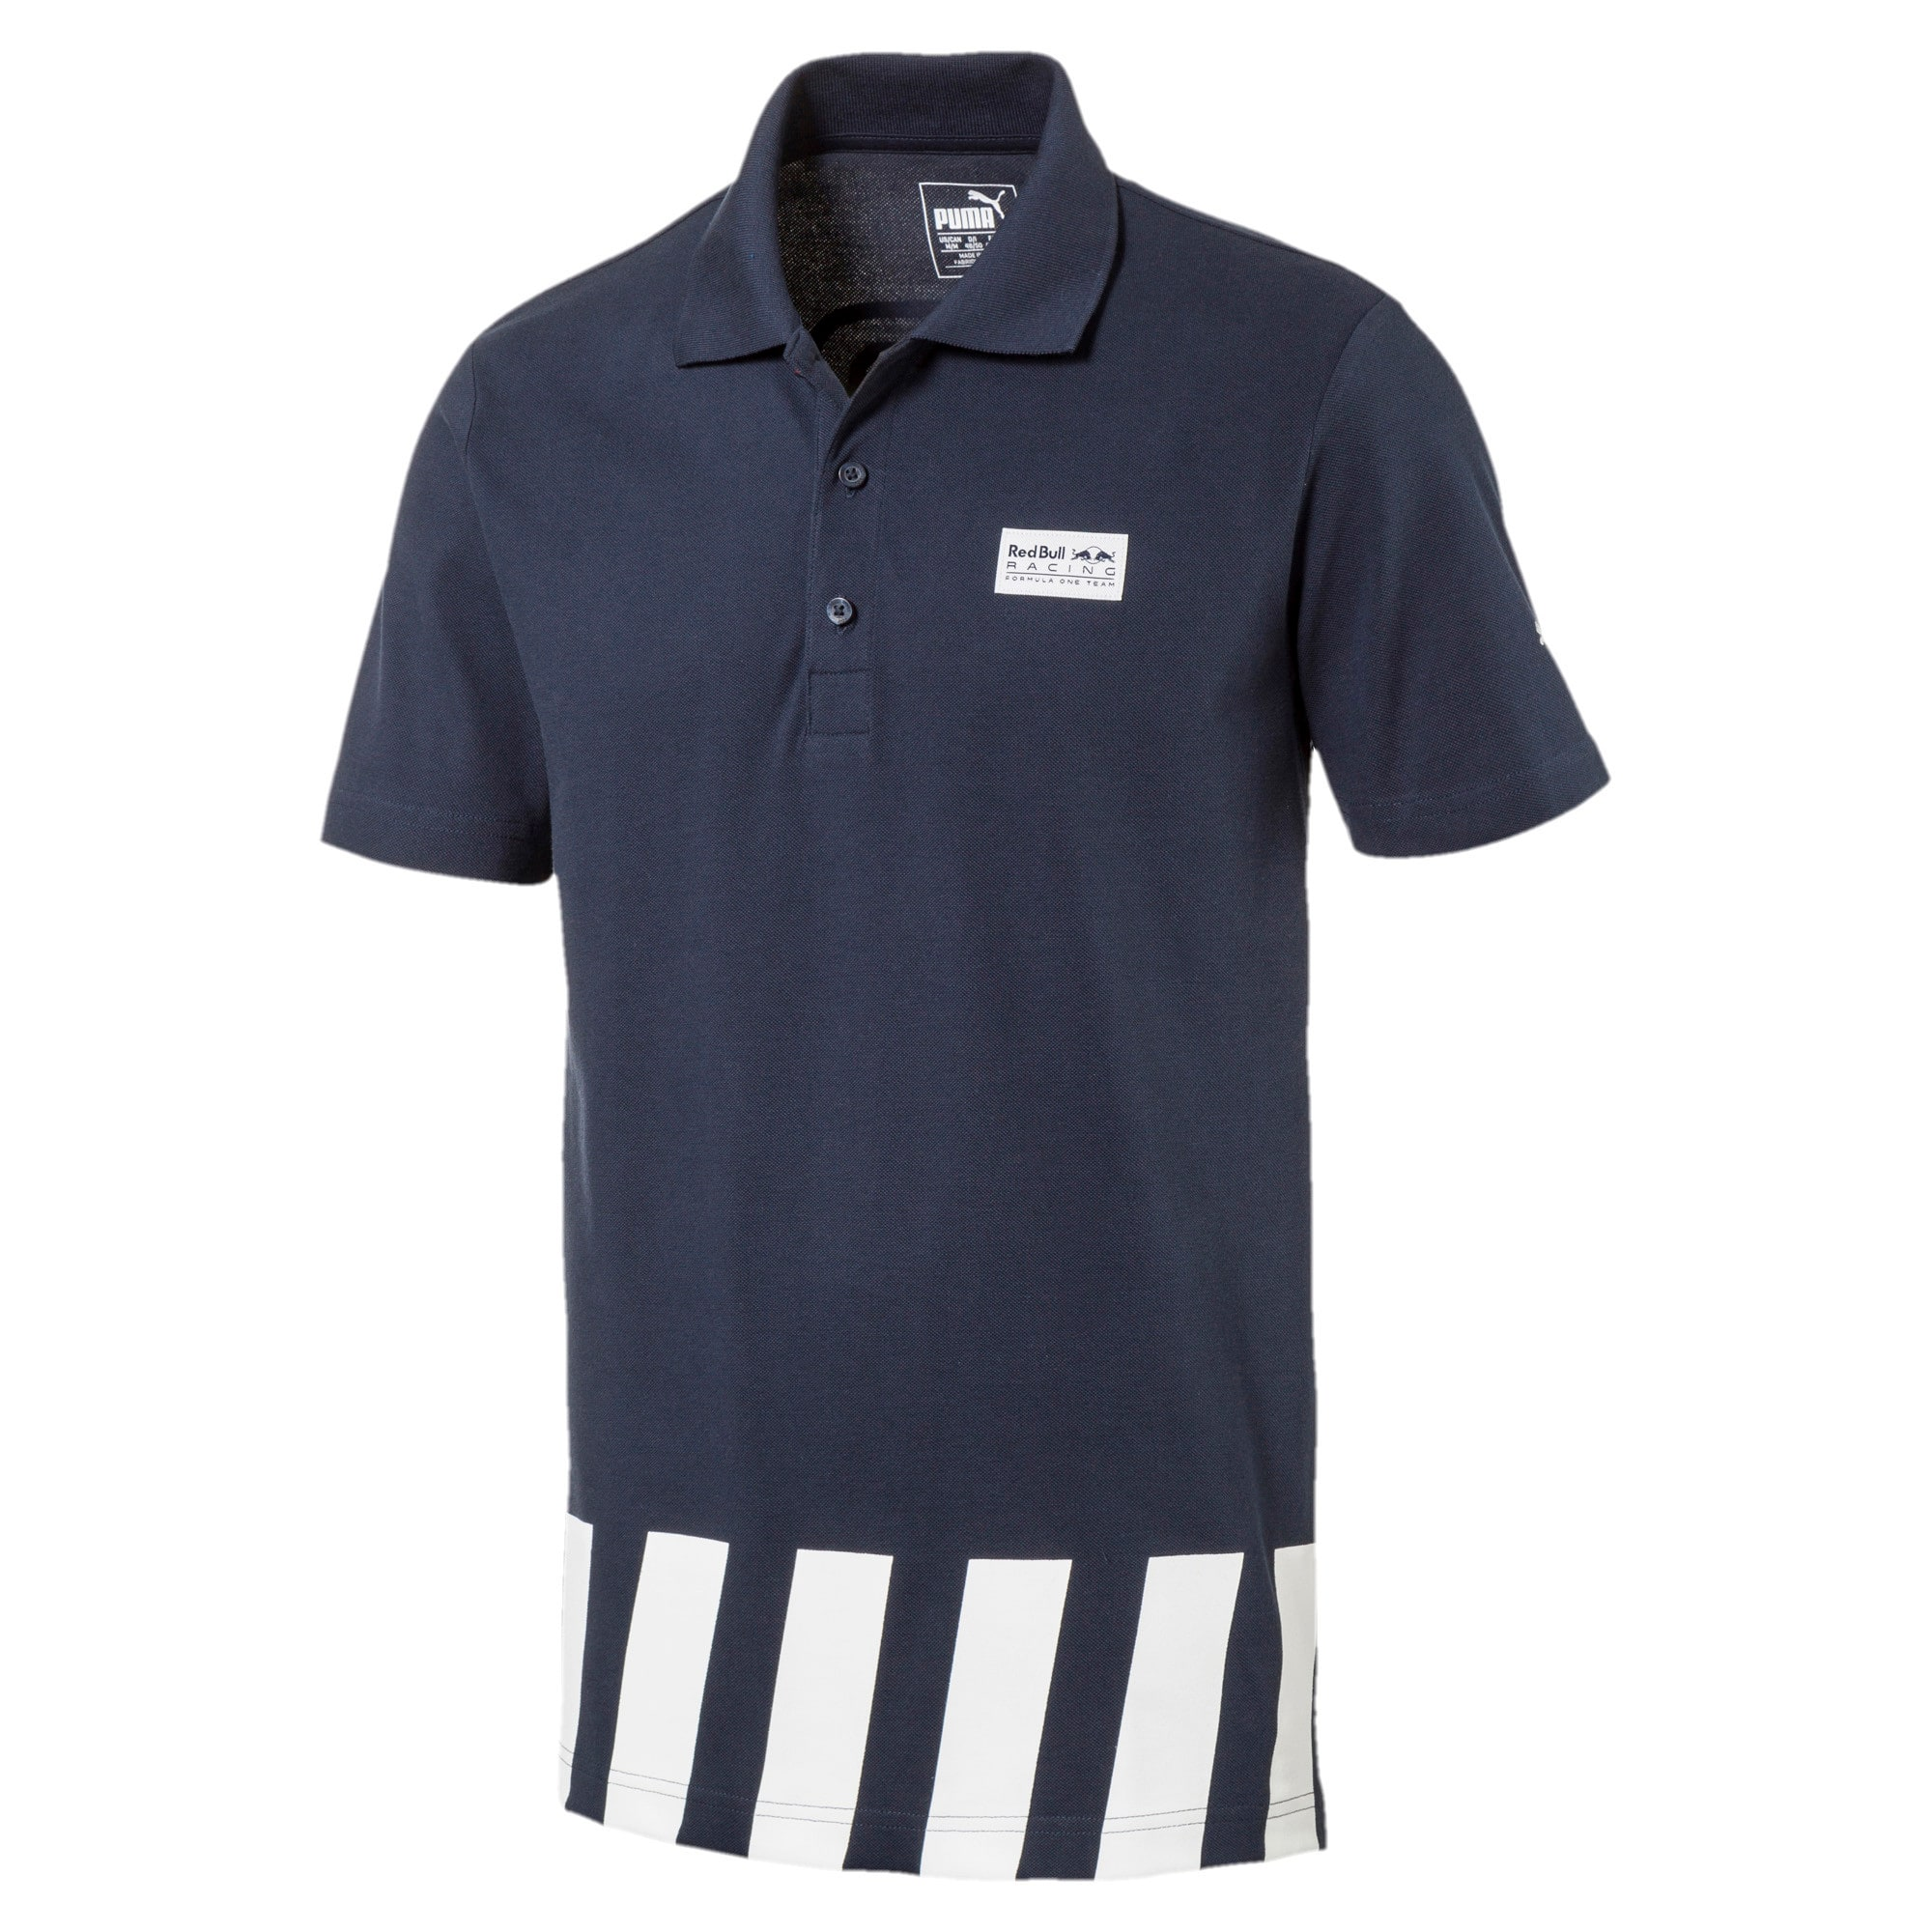 Thumbnail 1 of Red Bull Racing Men's Polo, Total Eclipse, medium-IND